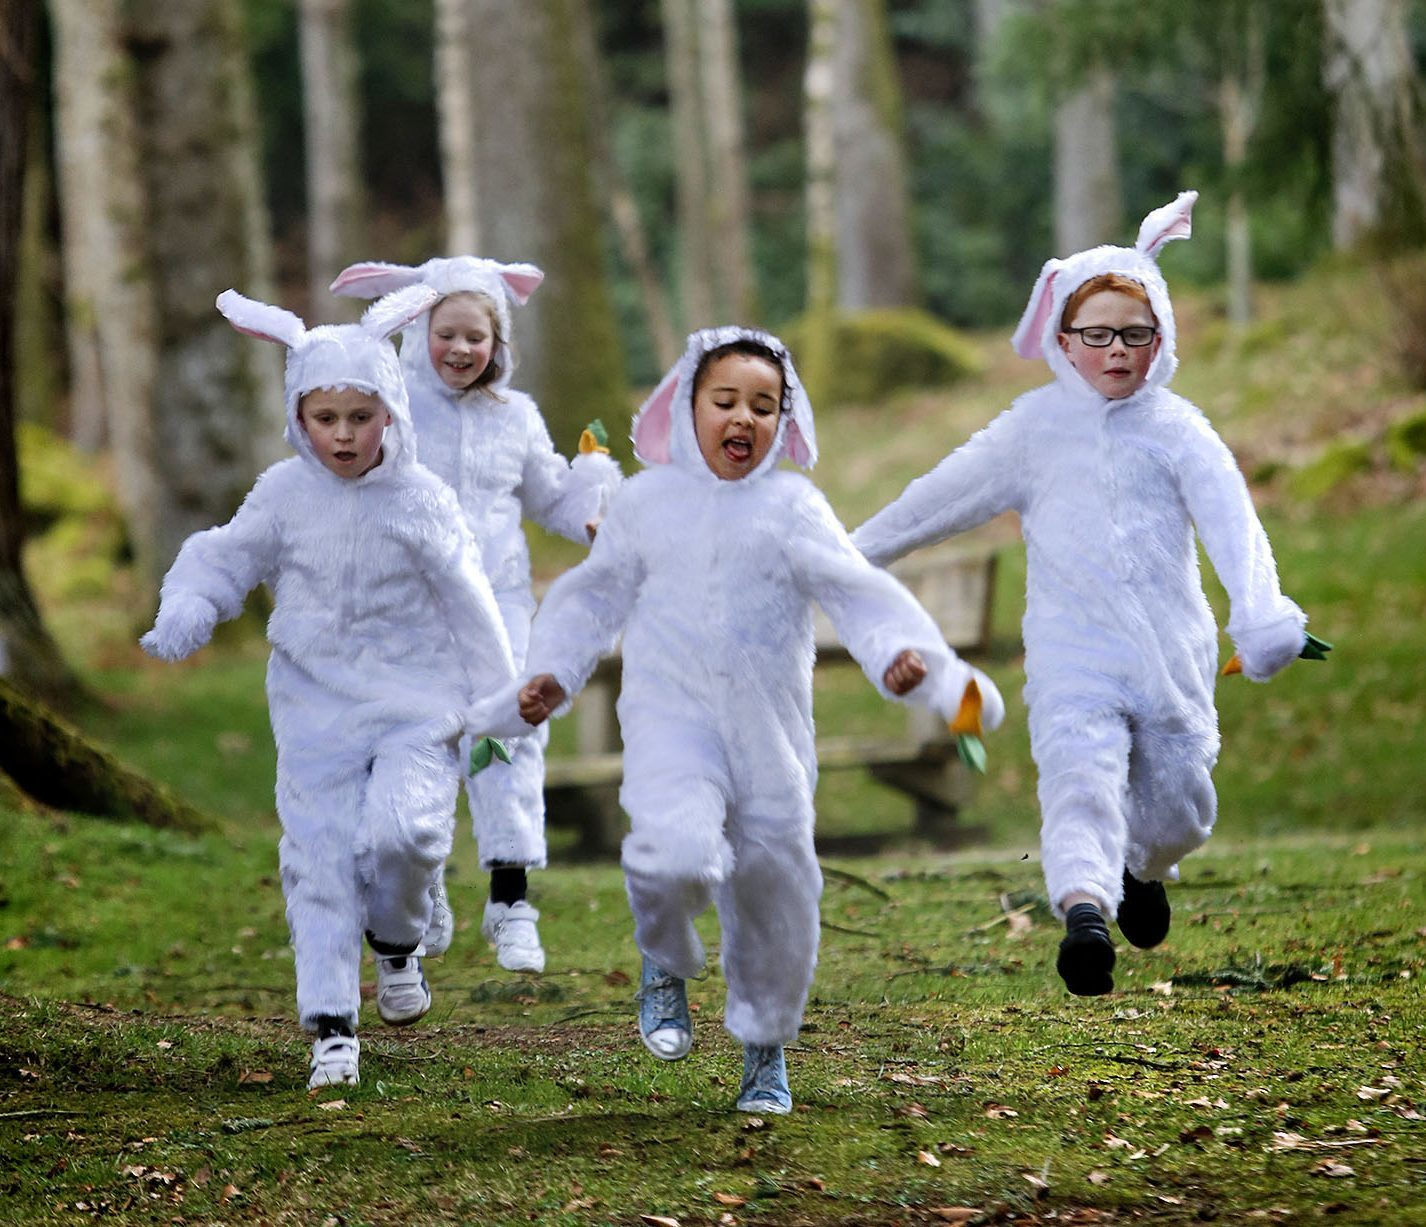 Easter Bunnies Mateusz Rozycki, Amelia Campbell, Gabriella Njuguna and Rory Hill from Hill of Banchory Primary get ready for the 10th annual Cadbury Egg Hunt at Crathes Castle in Aberdeenshire this Easter Weekend (14-17 April). Forty-seven National Trust for Scotland locations across Scotland will take part in the 2017 event, with over 36,000 chocolate treats on offer for participating children.